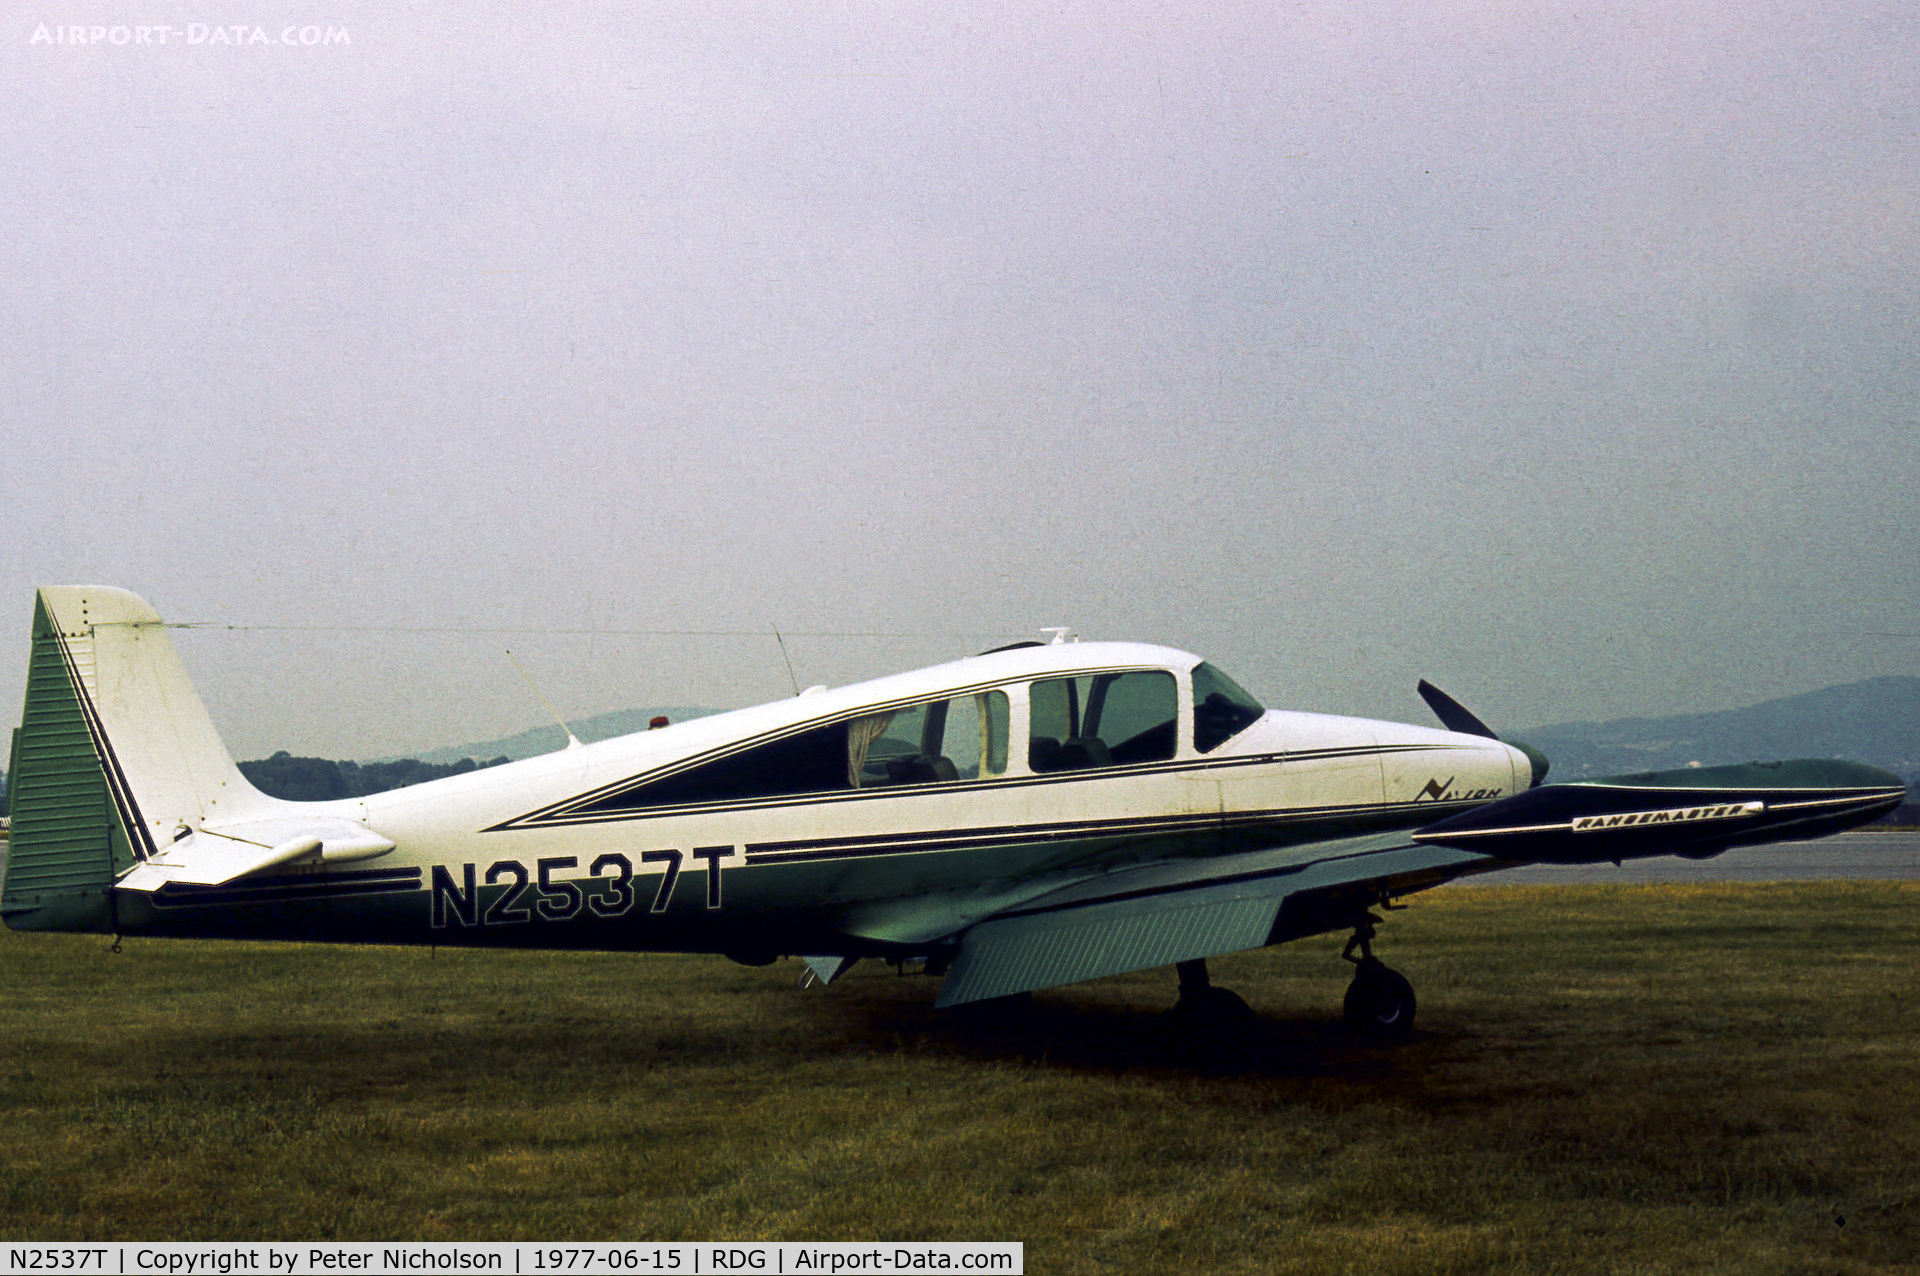 N2537T, 1970 Navion Rangemaster H C/N NAV-4-2537, Navion Rangemaster seen at the 1977 Reading Airshow.